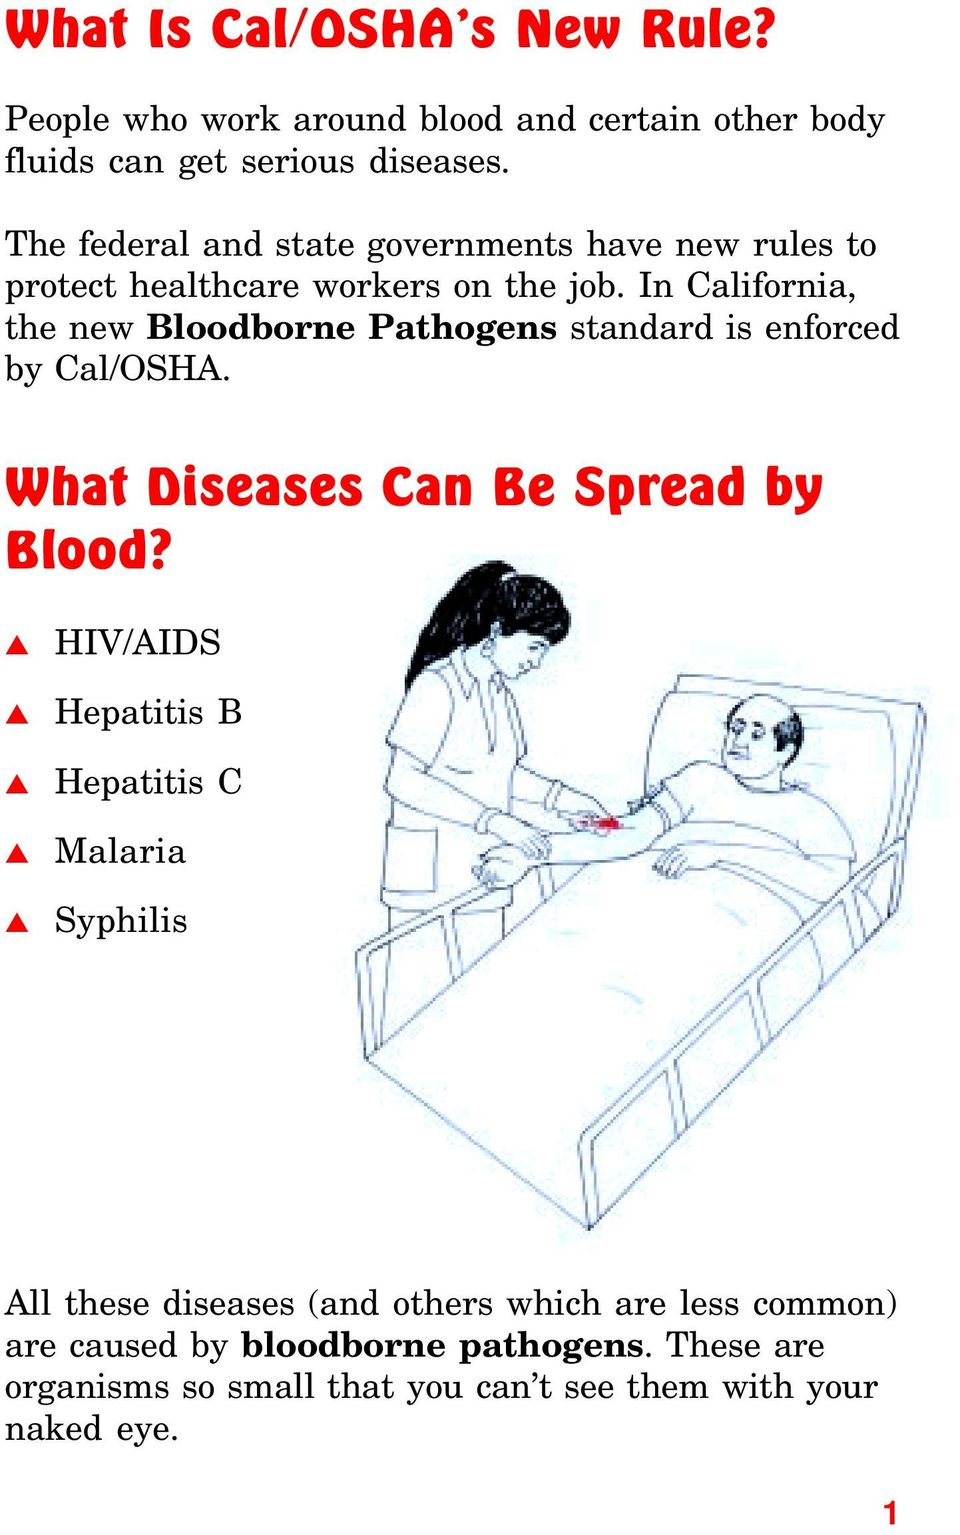 In California, the new Bloodborne Pathogens standard is enforced by Cal/OSHA. What Diseases Can Be Spread by Blood?